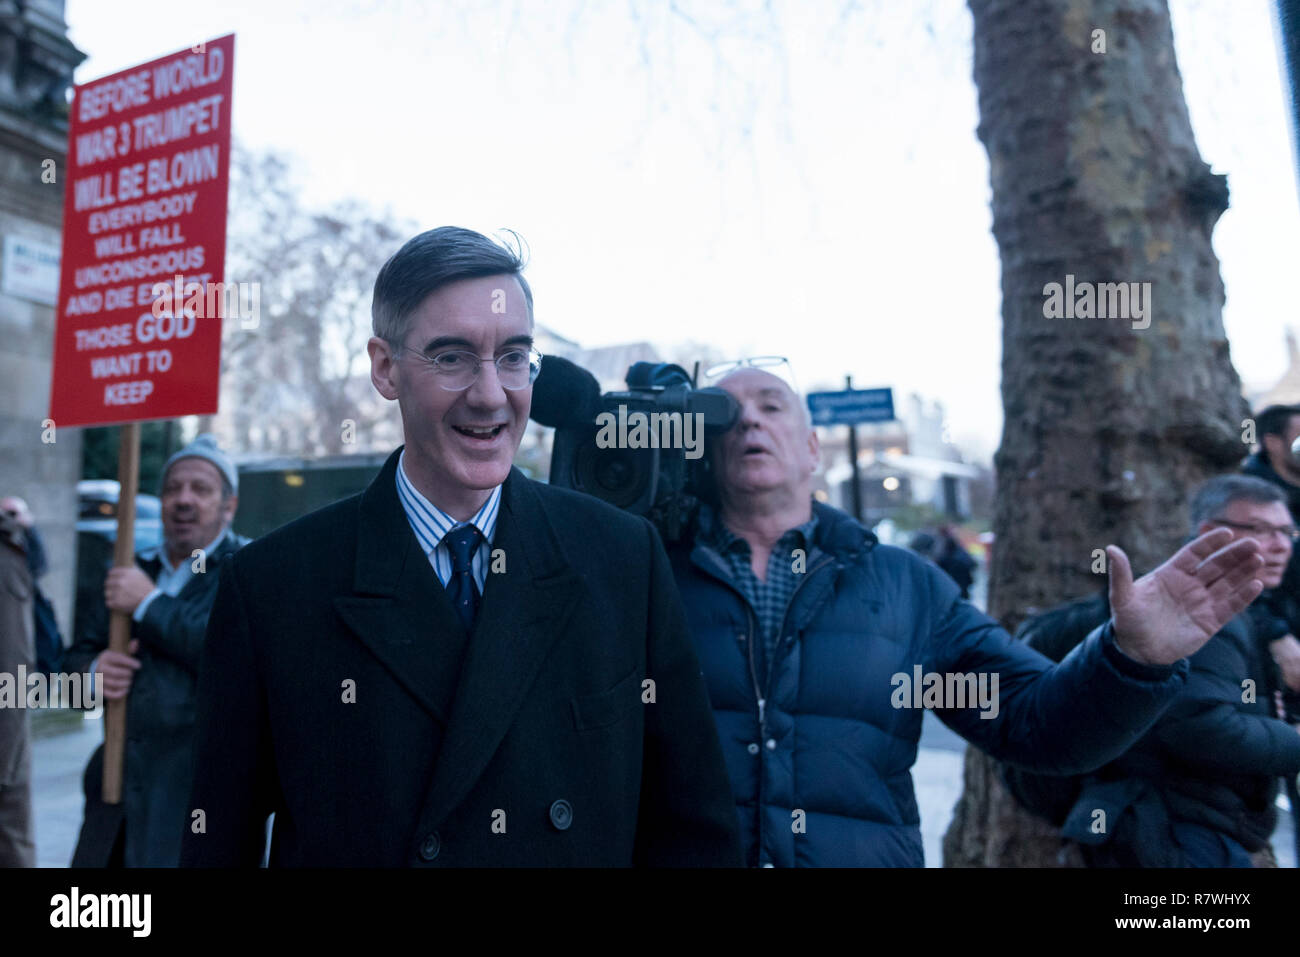 London, UK.  11 December 2018. Pro-Brexiteer Jacob Rees-Mogg, MP for North East Somerset, is seen in Westminster. Theresa May, Prime Minister, is touring European capitals to try to renegotiate the Brexit agreement with the European Union after today's meaningful vote by MP's was deferred. Credit: Stephen Chung / Alamy Live News - Stock Image